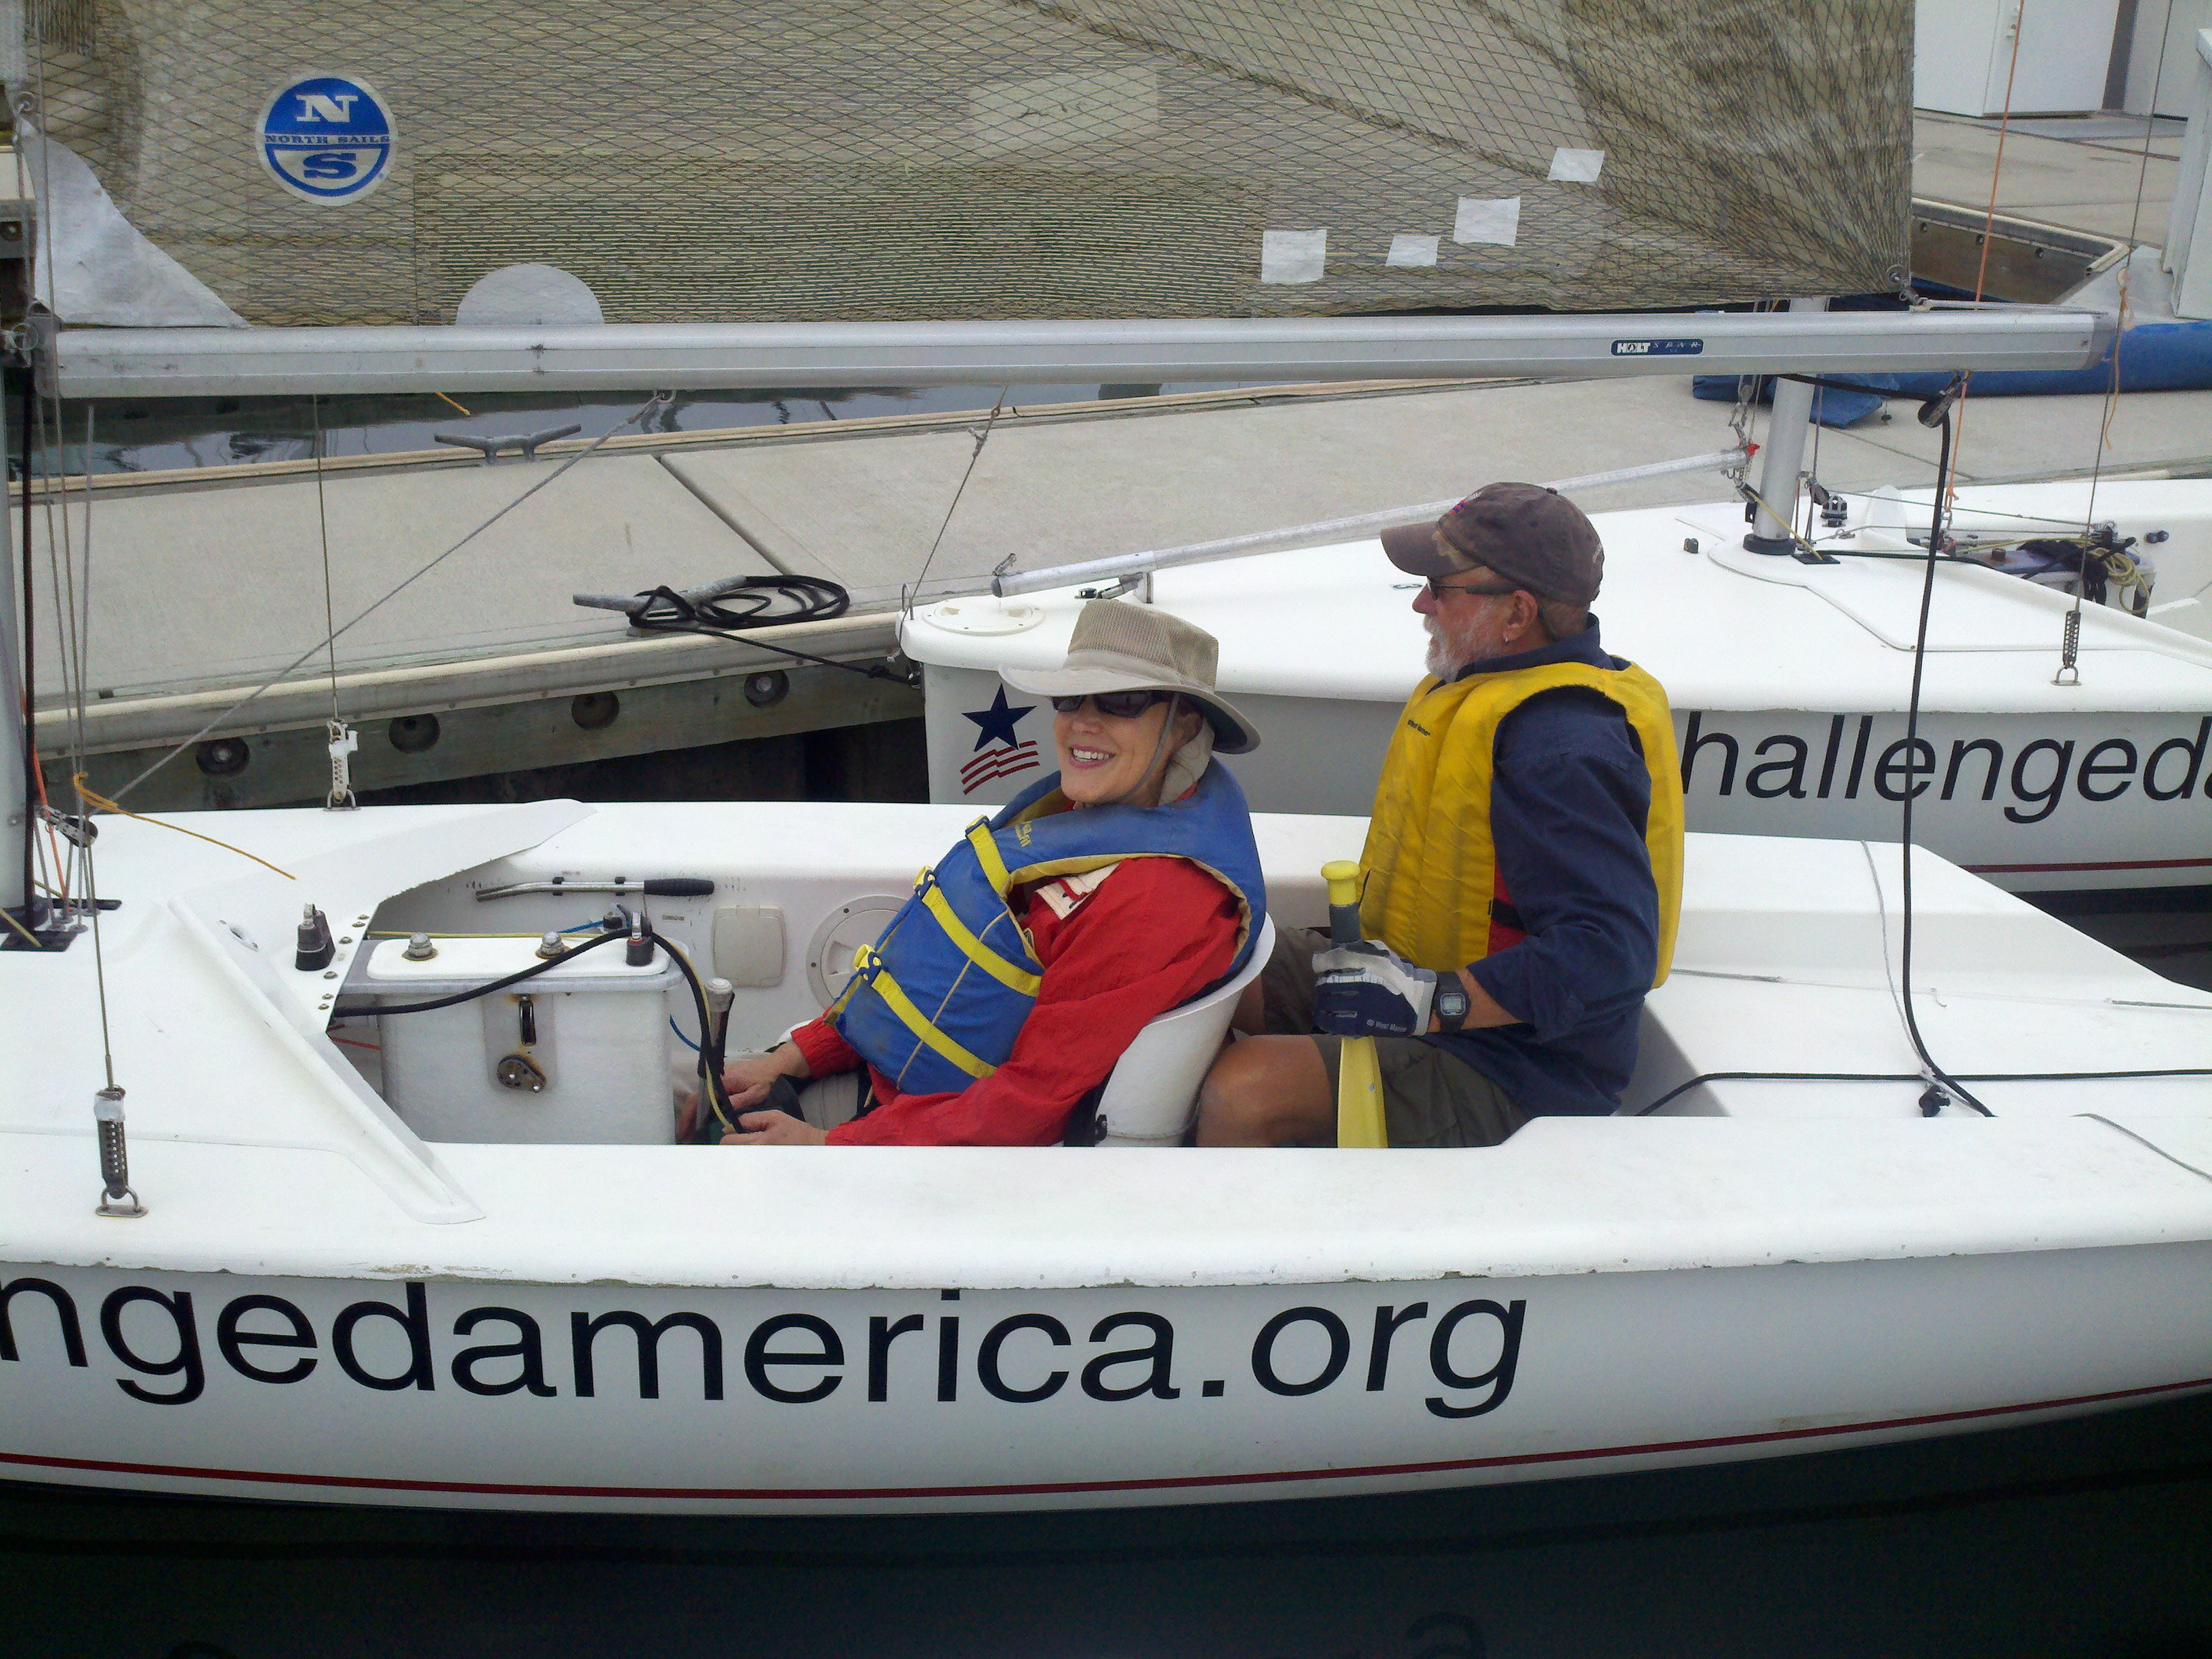 Disabled Sailor Discovers Love of Water Through Challenged America